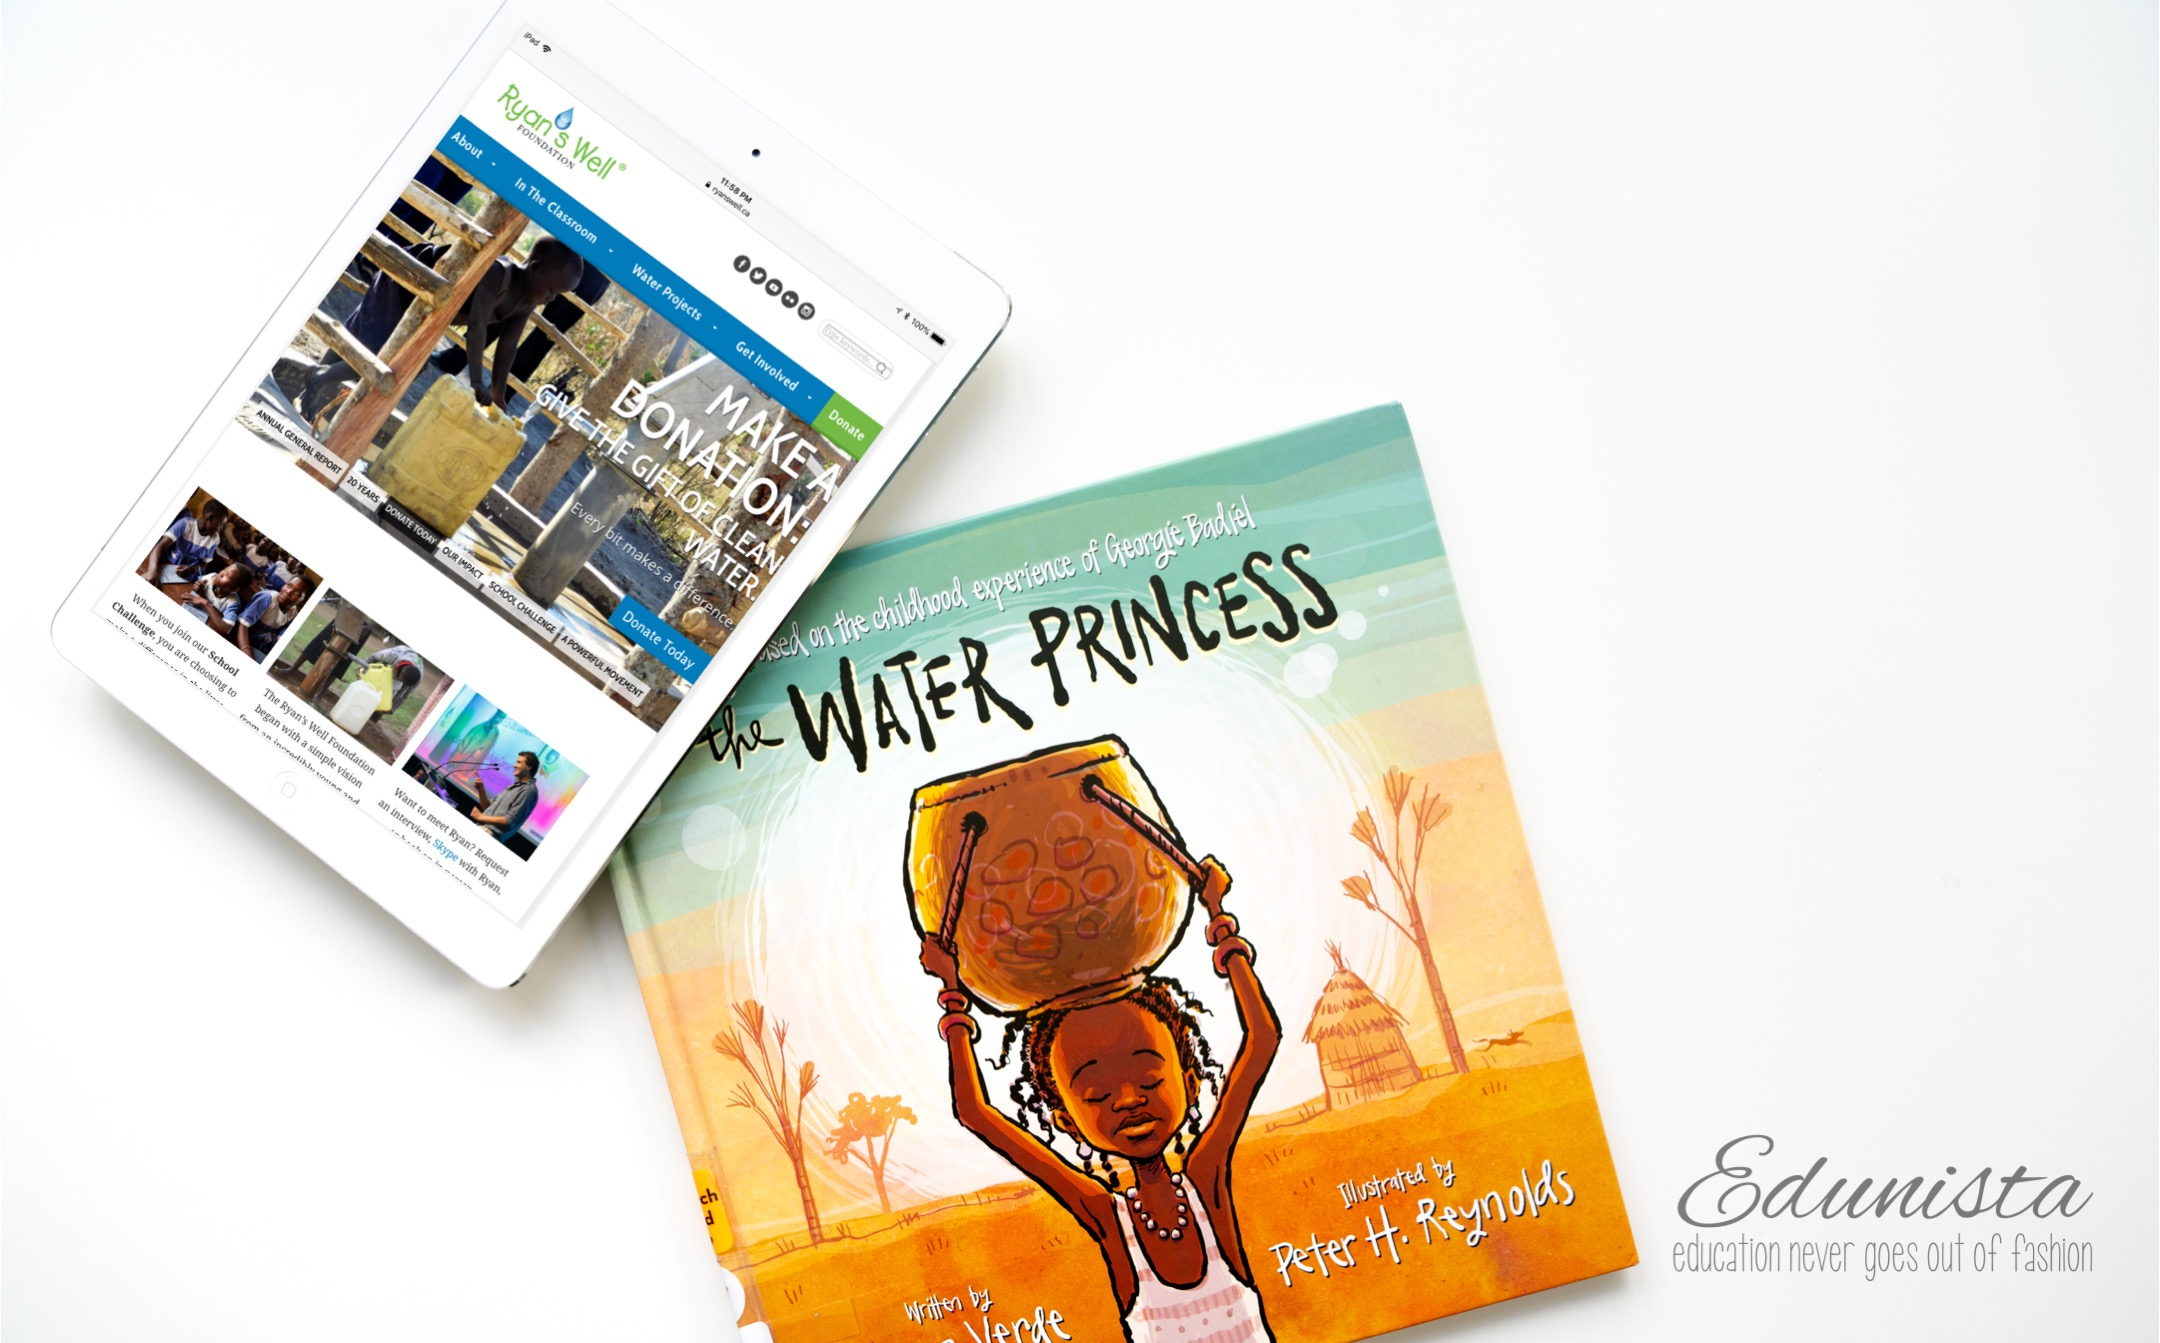 It's appalling that nearly one billion people around the world have limited access to clean, drinkable water and that nearly 5,000 children die each day from preventable water and sanitation related illnesses. The book, The Water Princess, written by Susan Verde and illustrated by Peter H. Reynolds, inspired us to support the work of the Ryan's Well Foundation working in developing countries with local partners to provide access to clean water and sanitation and hygiene education. Be part of the change with the TpT Day of Giving!